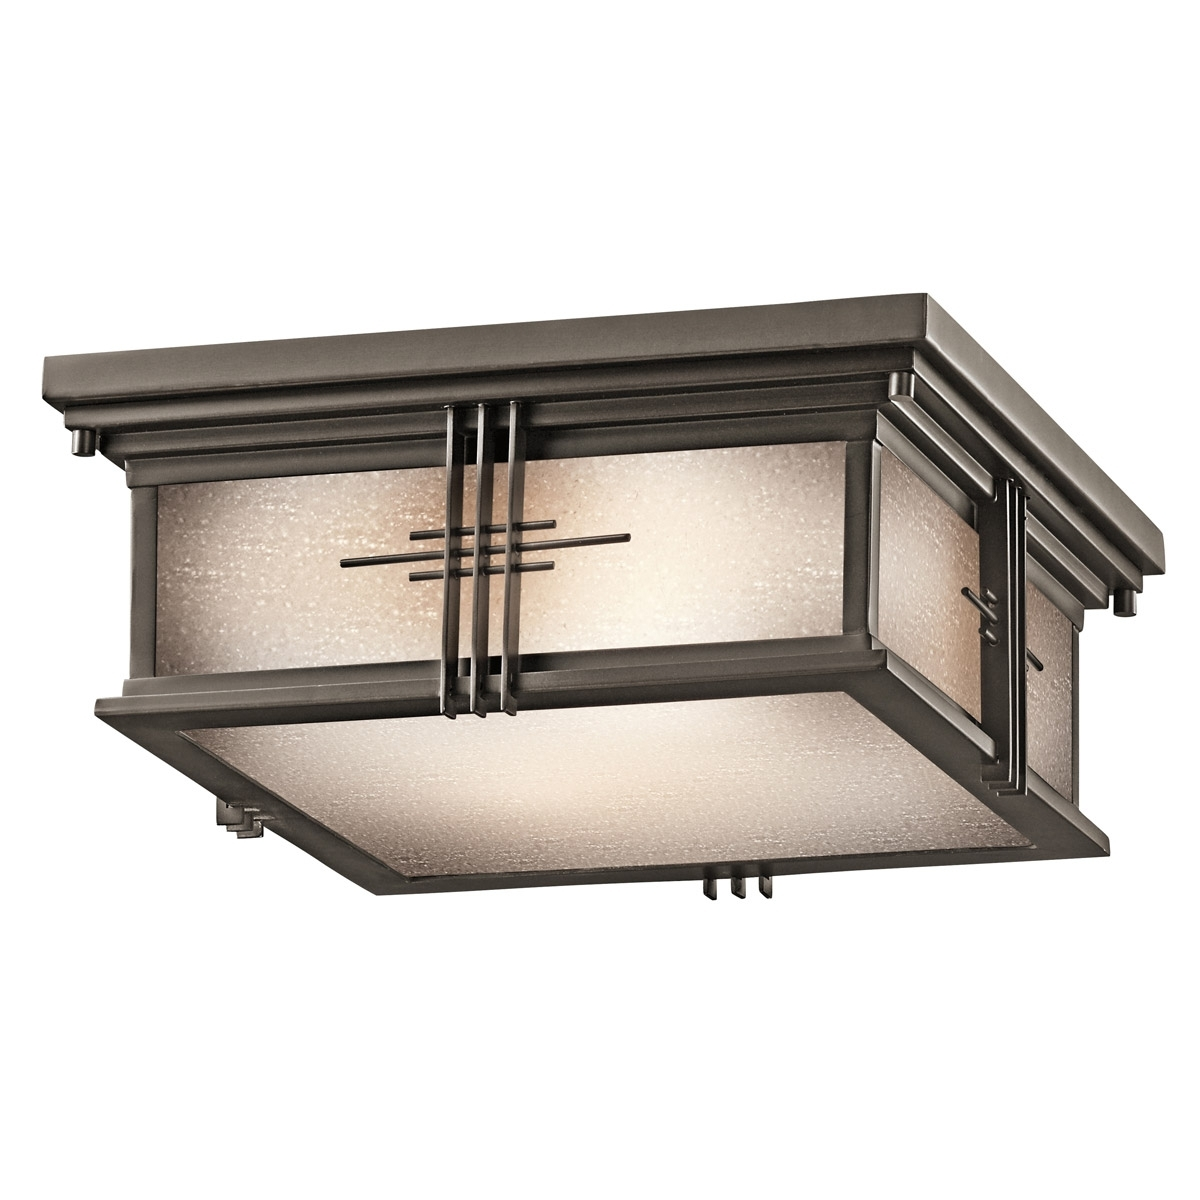 49164oz Portman Square Outdoor Flush Mount Ceiling Fixture For Most Recently Released Outdoor Ceiling Lighting Fixtures (View 8 of 20)